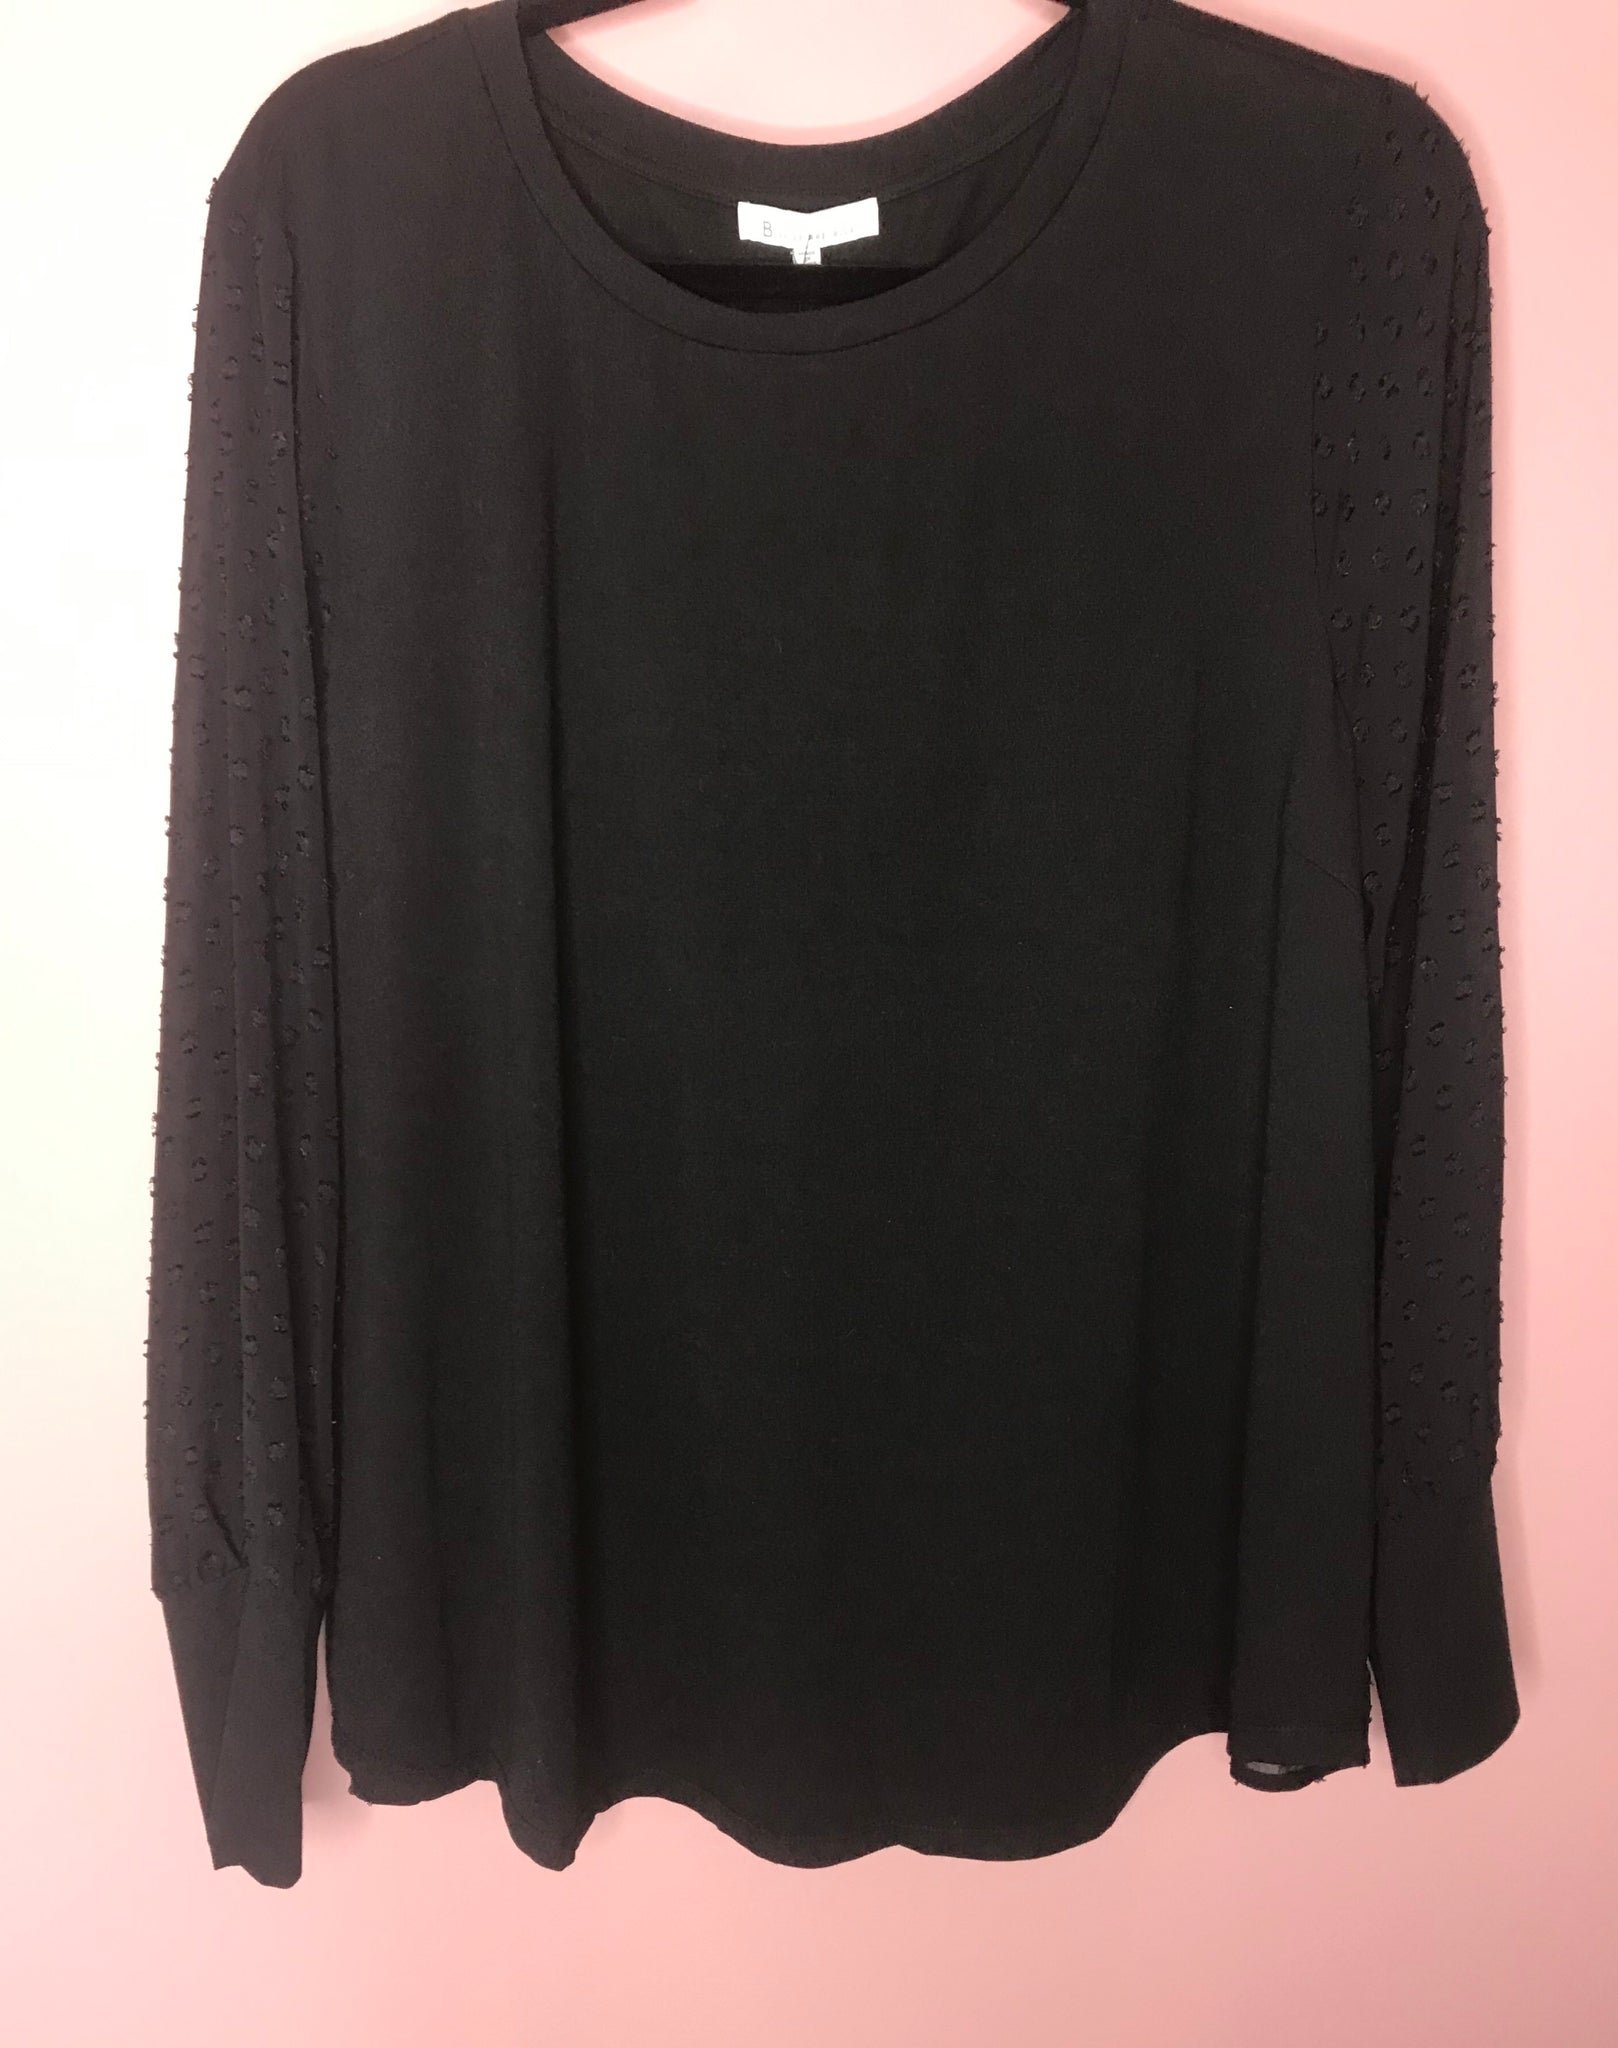 245 Black Top W/ Black Button Detail